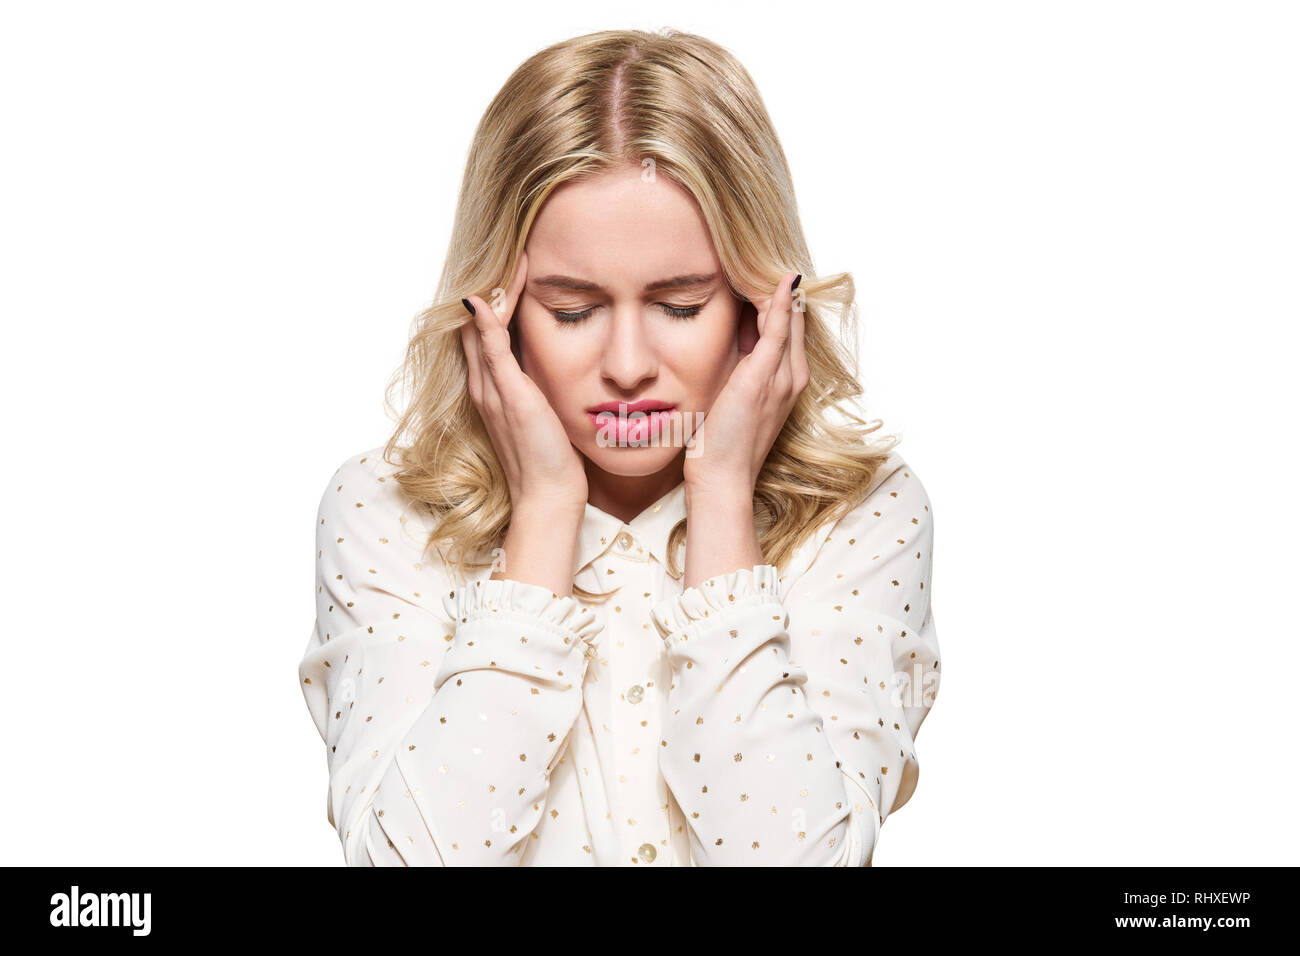 Young Woman Having Headache. Stressed Exhausted Young Woman massaging her temples. Woman Suffering From Migraine, Feeling Pressure And Stress. - Stock Image